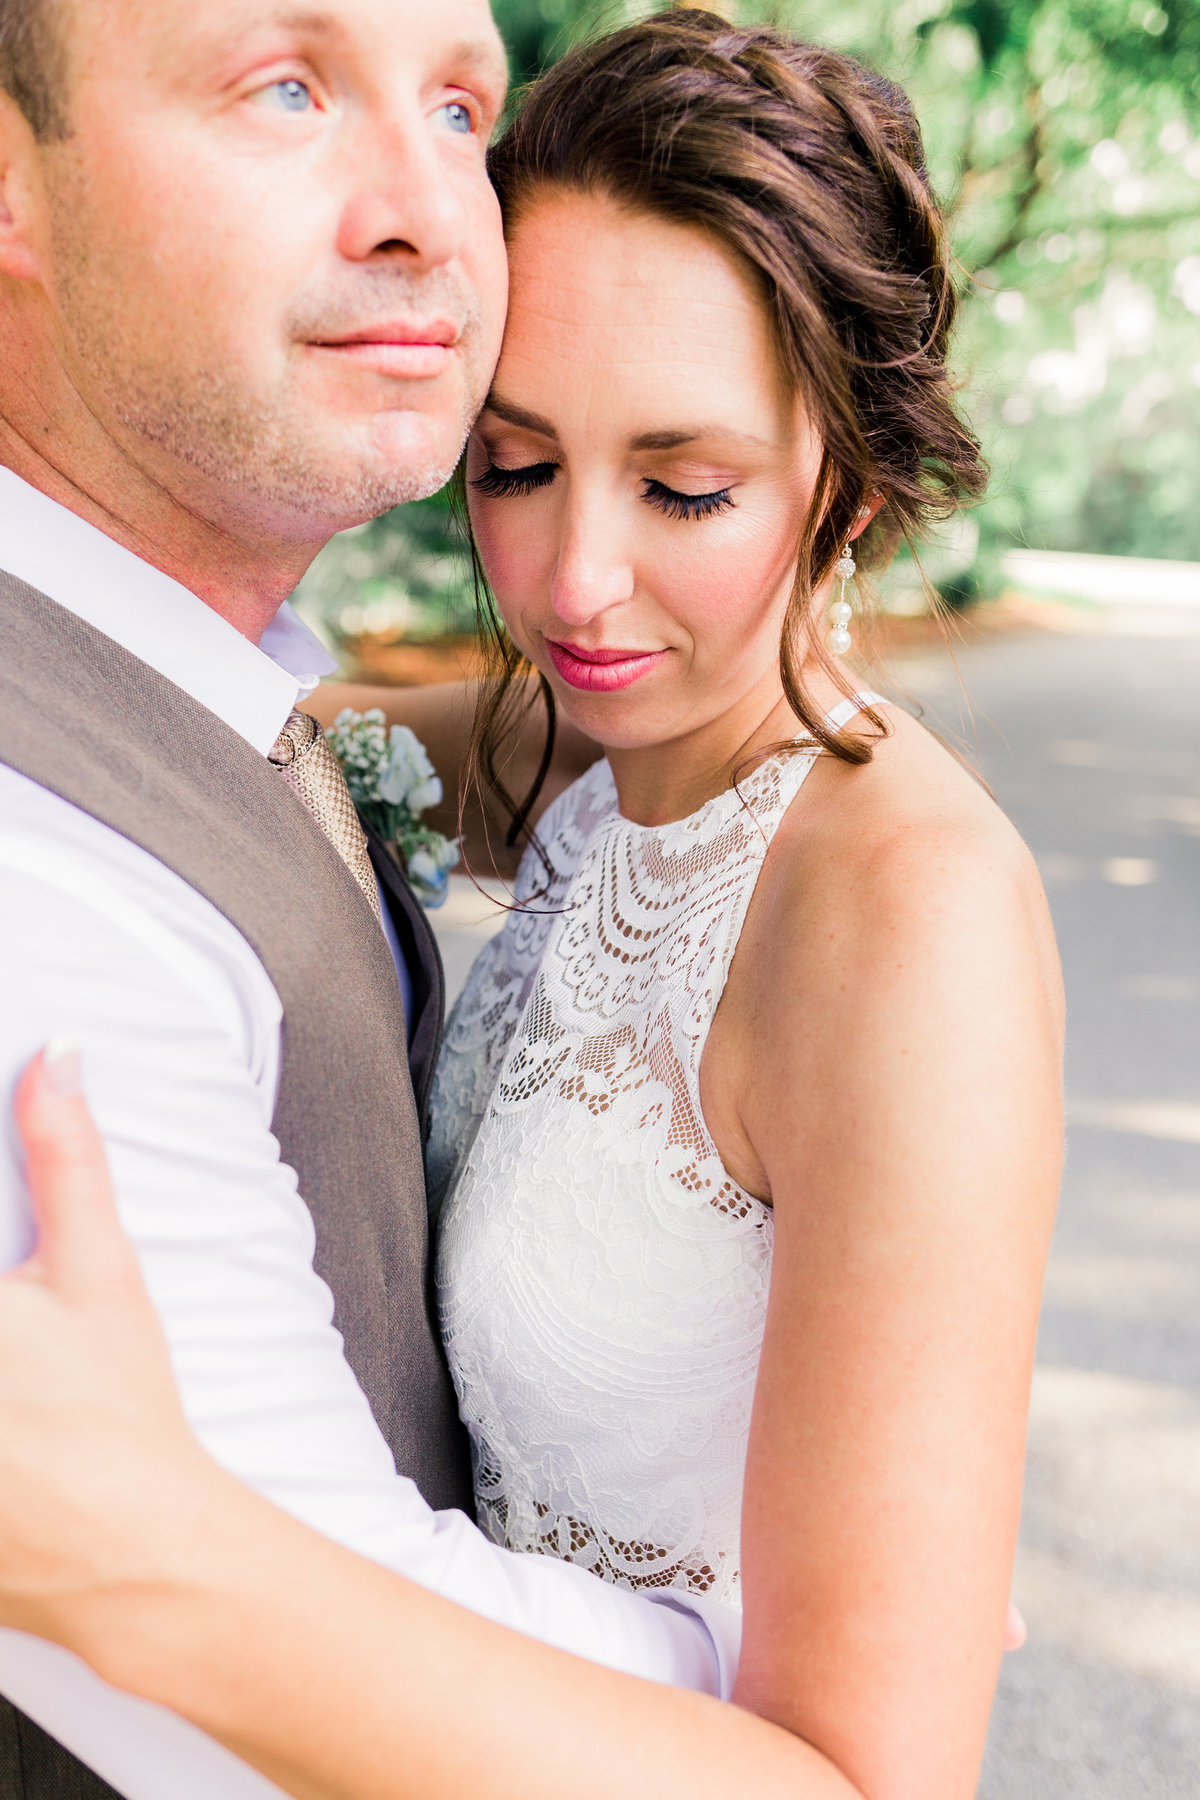 kimberly-hoyle-photography-kelly-david-grant-florida-wedding-75